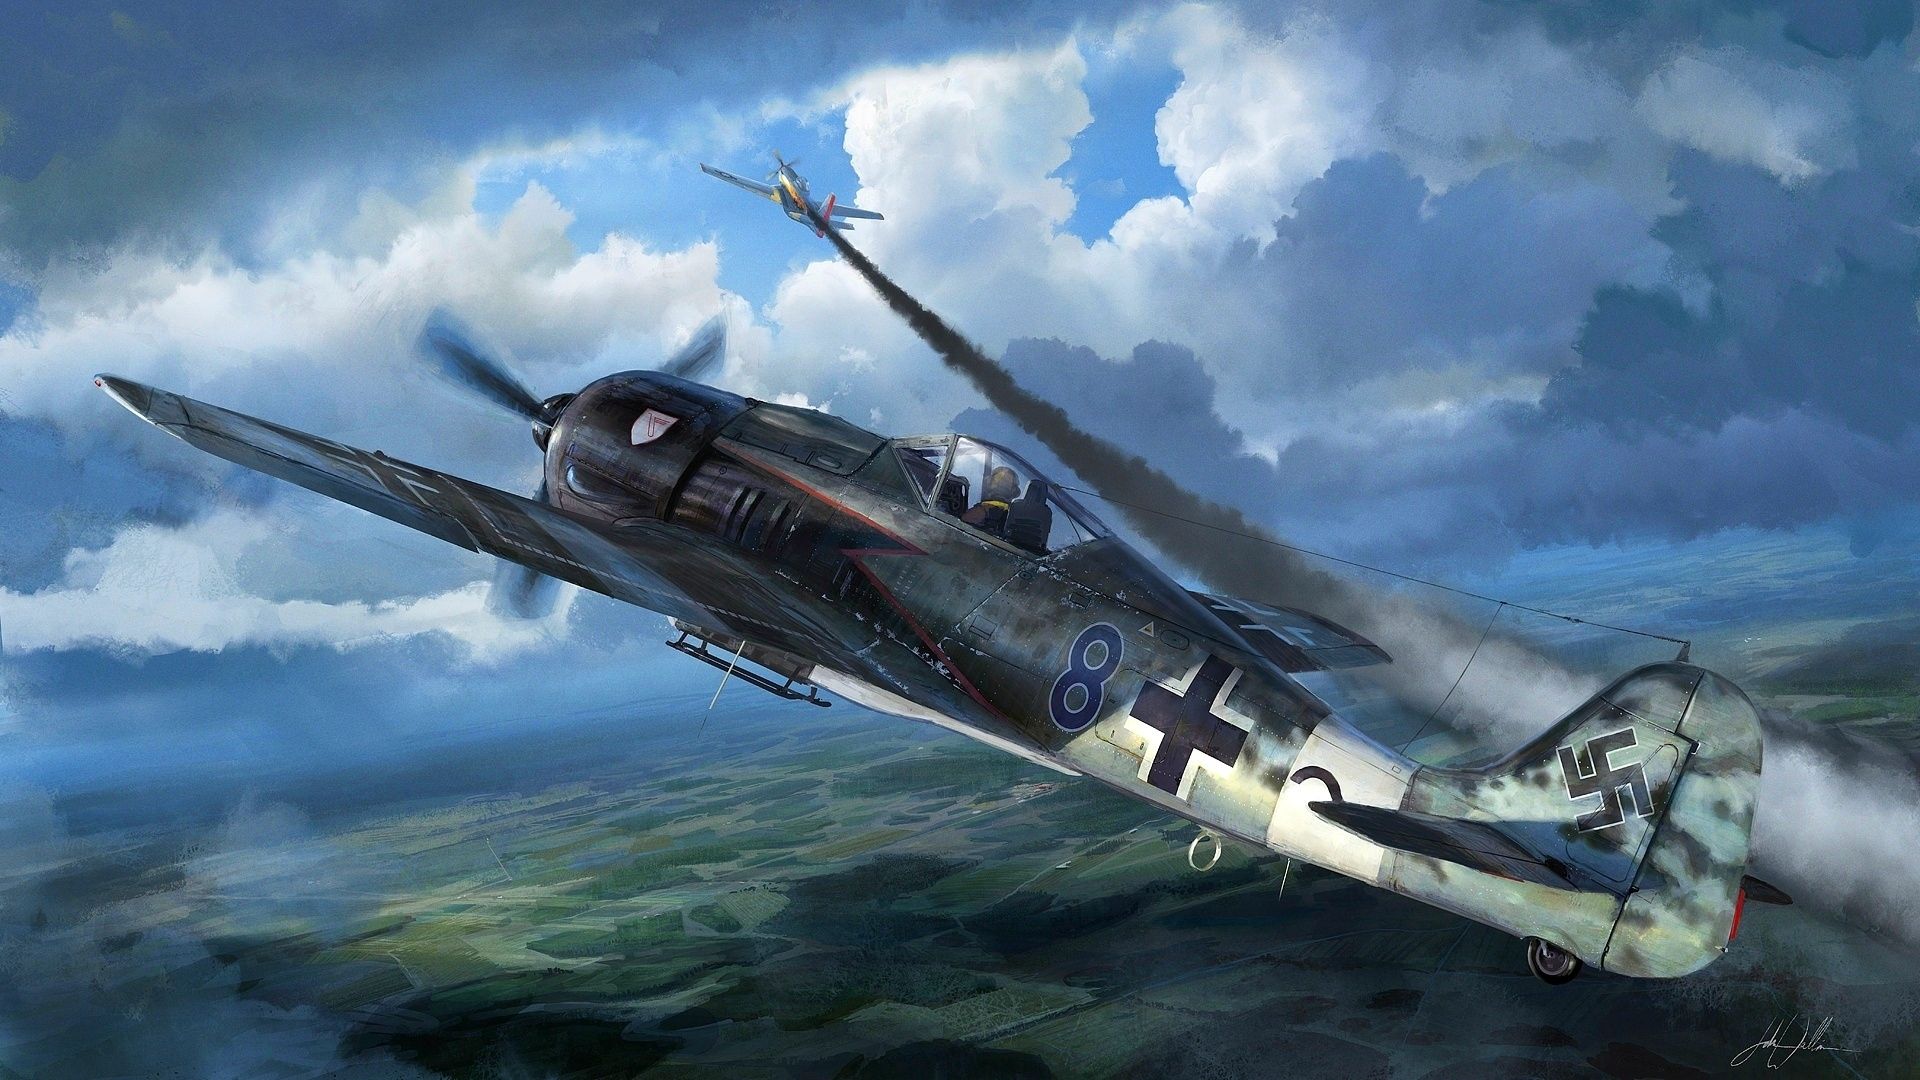 wwii fighter planes wallpapers 1920x1080 wallpapersafari